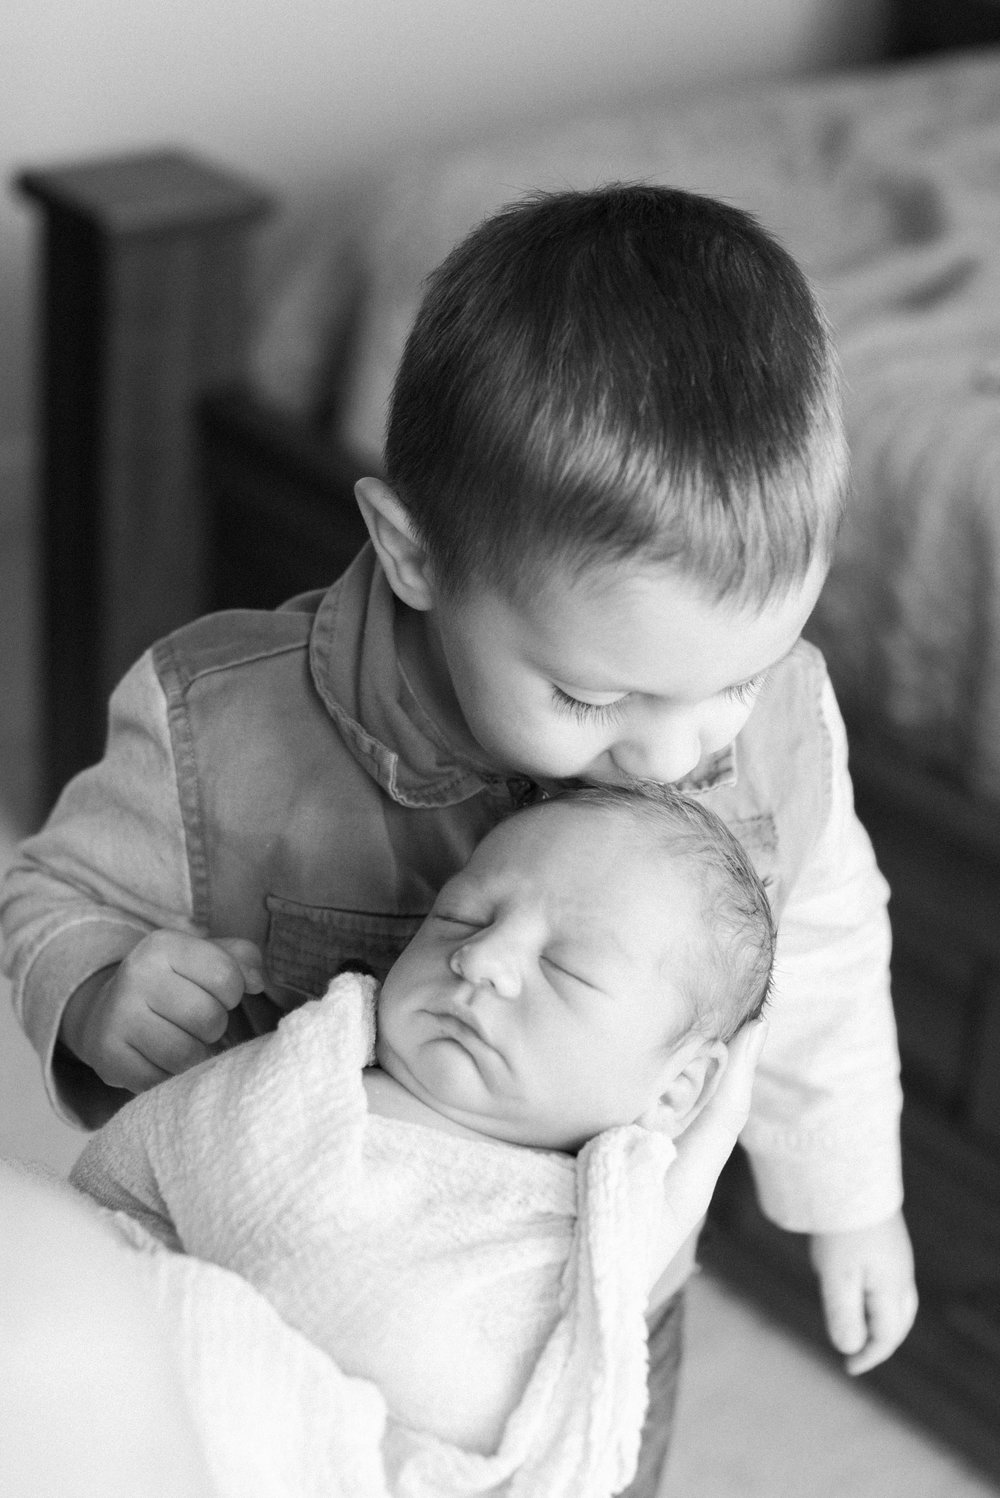 Big brother Ethan loves his little brother and connected with him instantly. This moment captured was tear jerking.